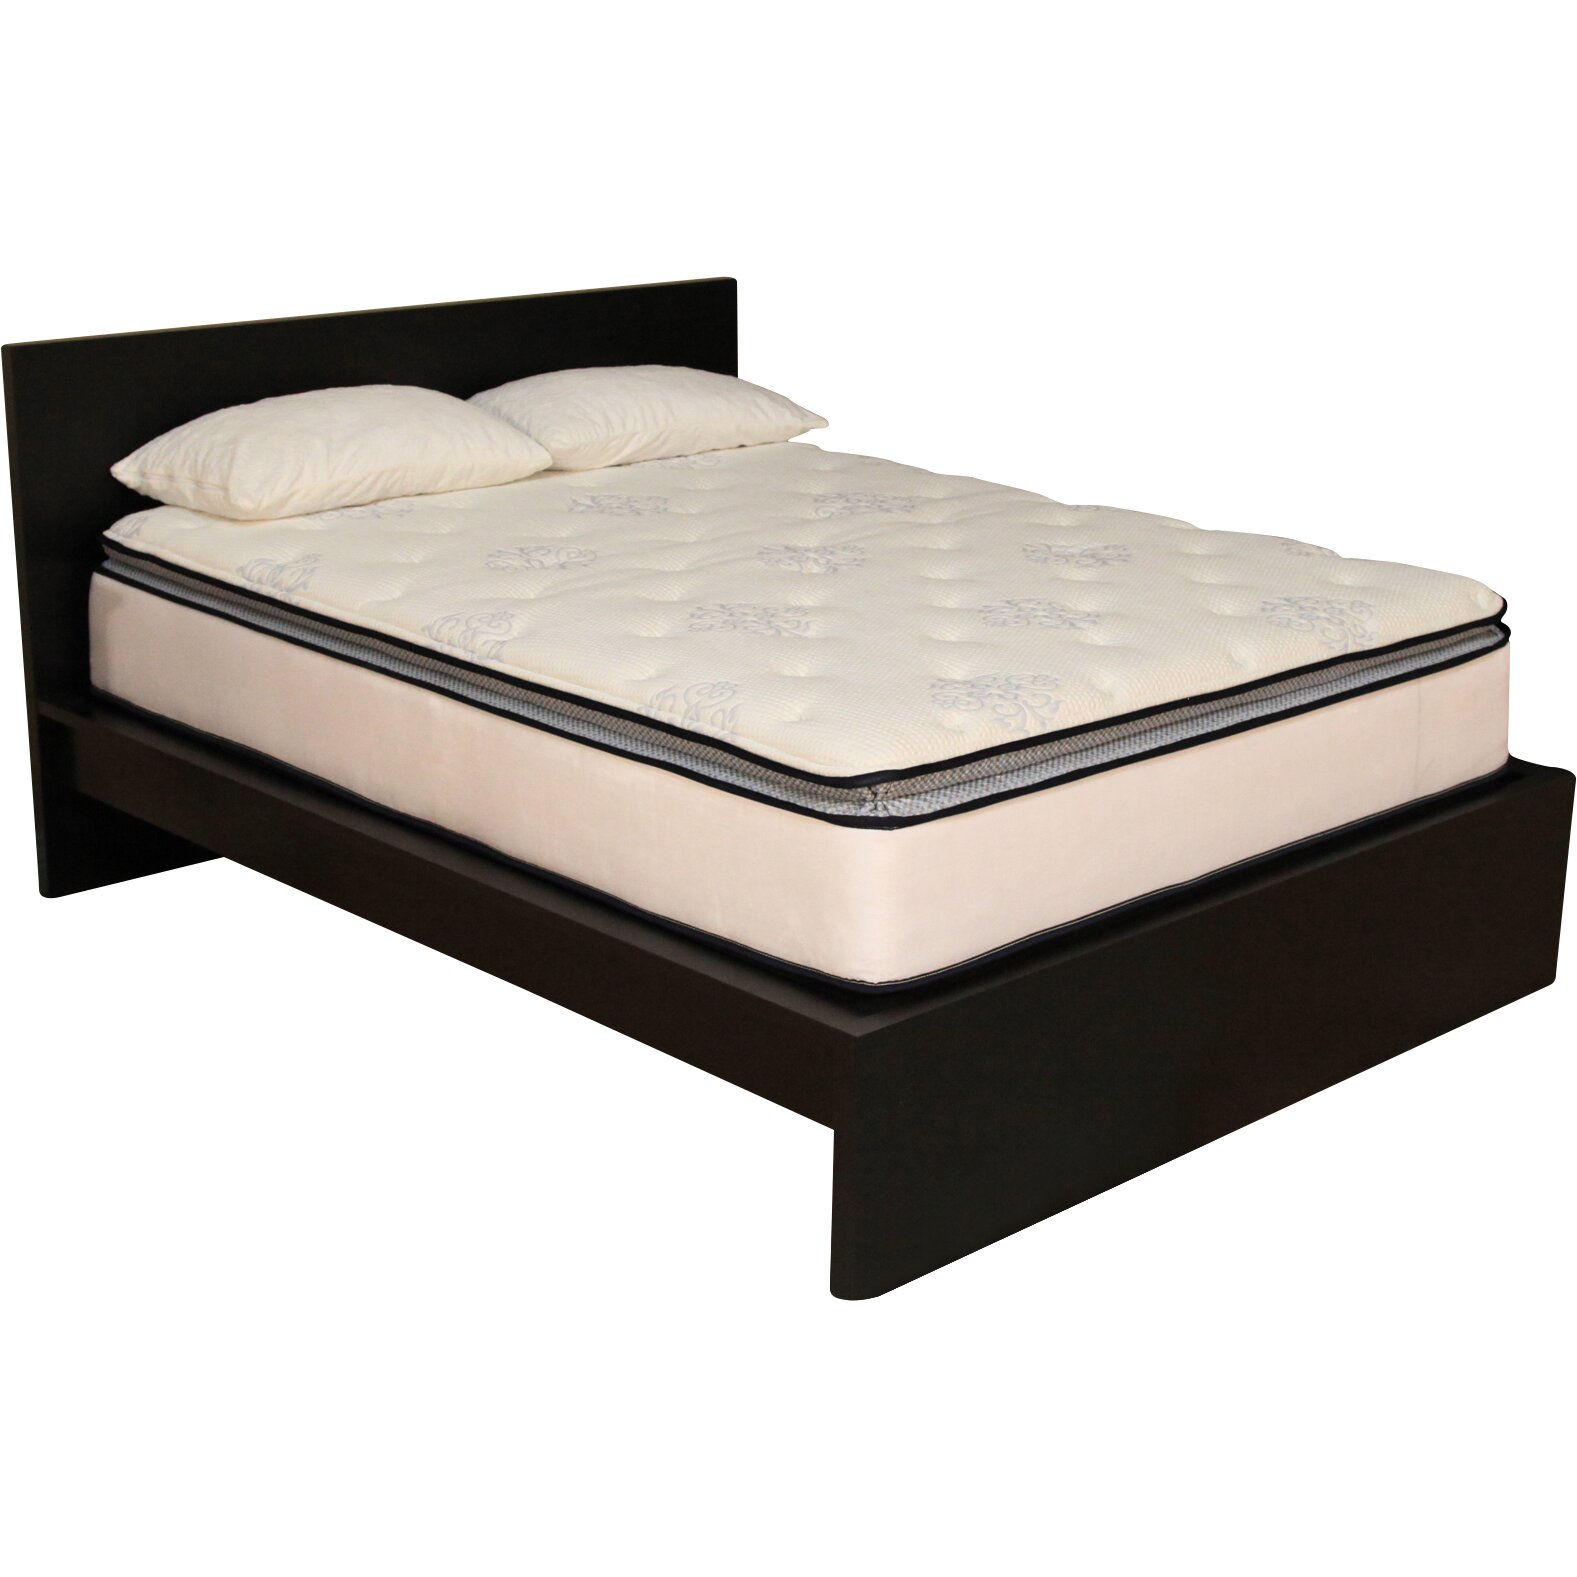 Brooklyn bedding ultimate dreams 12quot plush mattress for Brooklyn bedding ultimate dreams